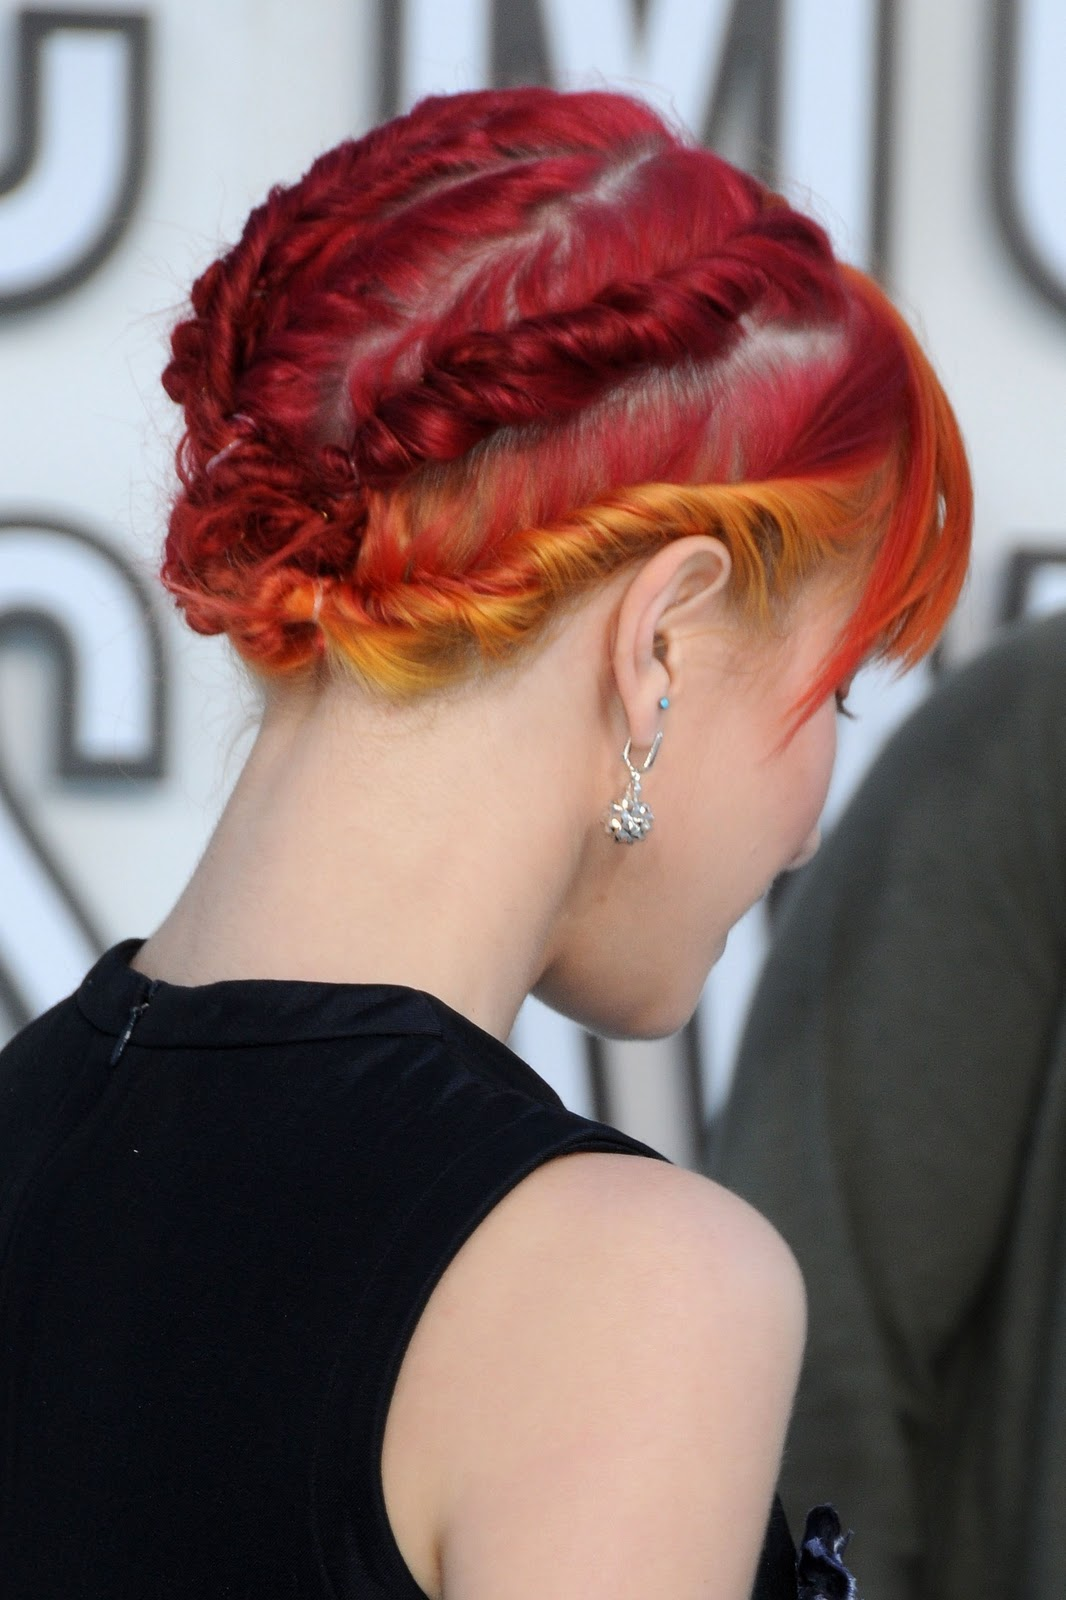 Emo Hairstyles | Emo Haircuts: Hayley Williams Fashion Emo Hair Trends